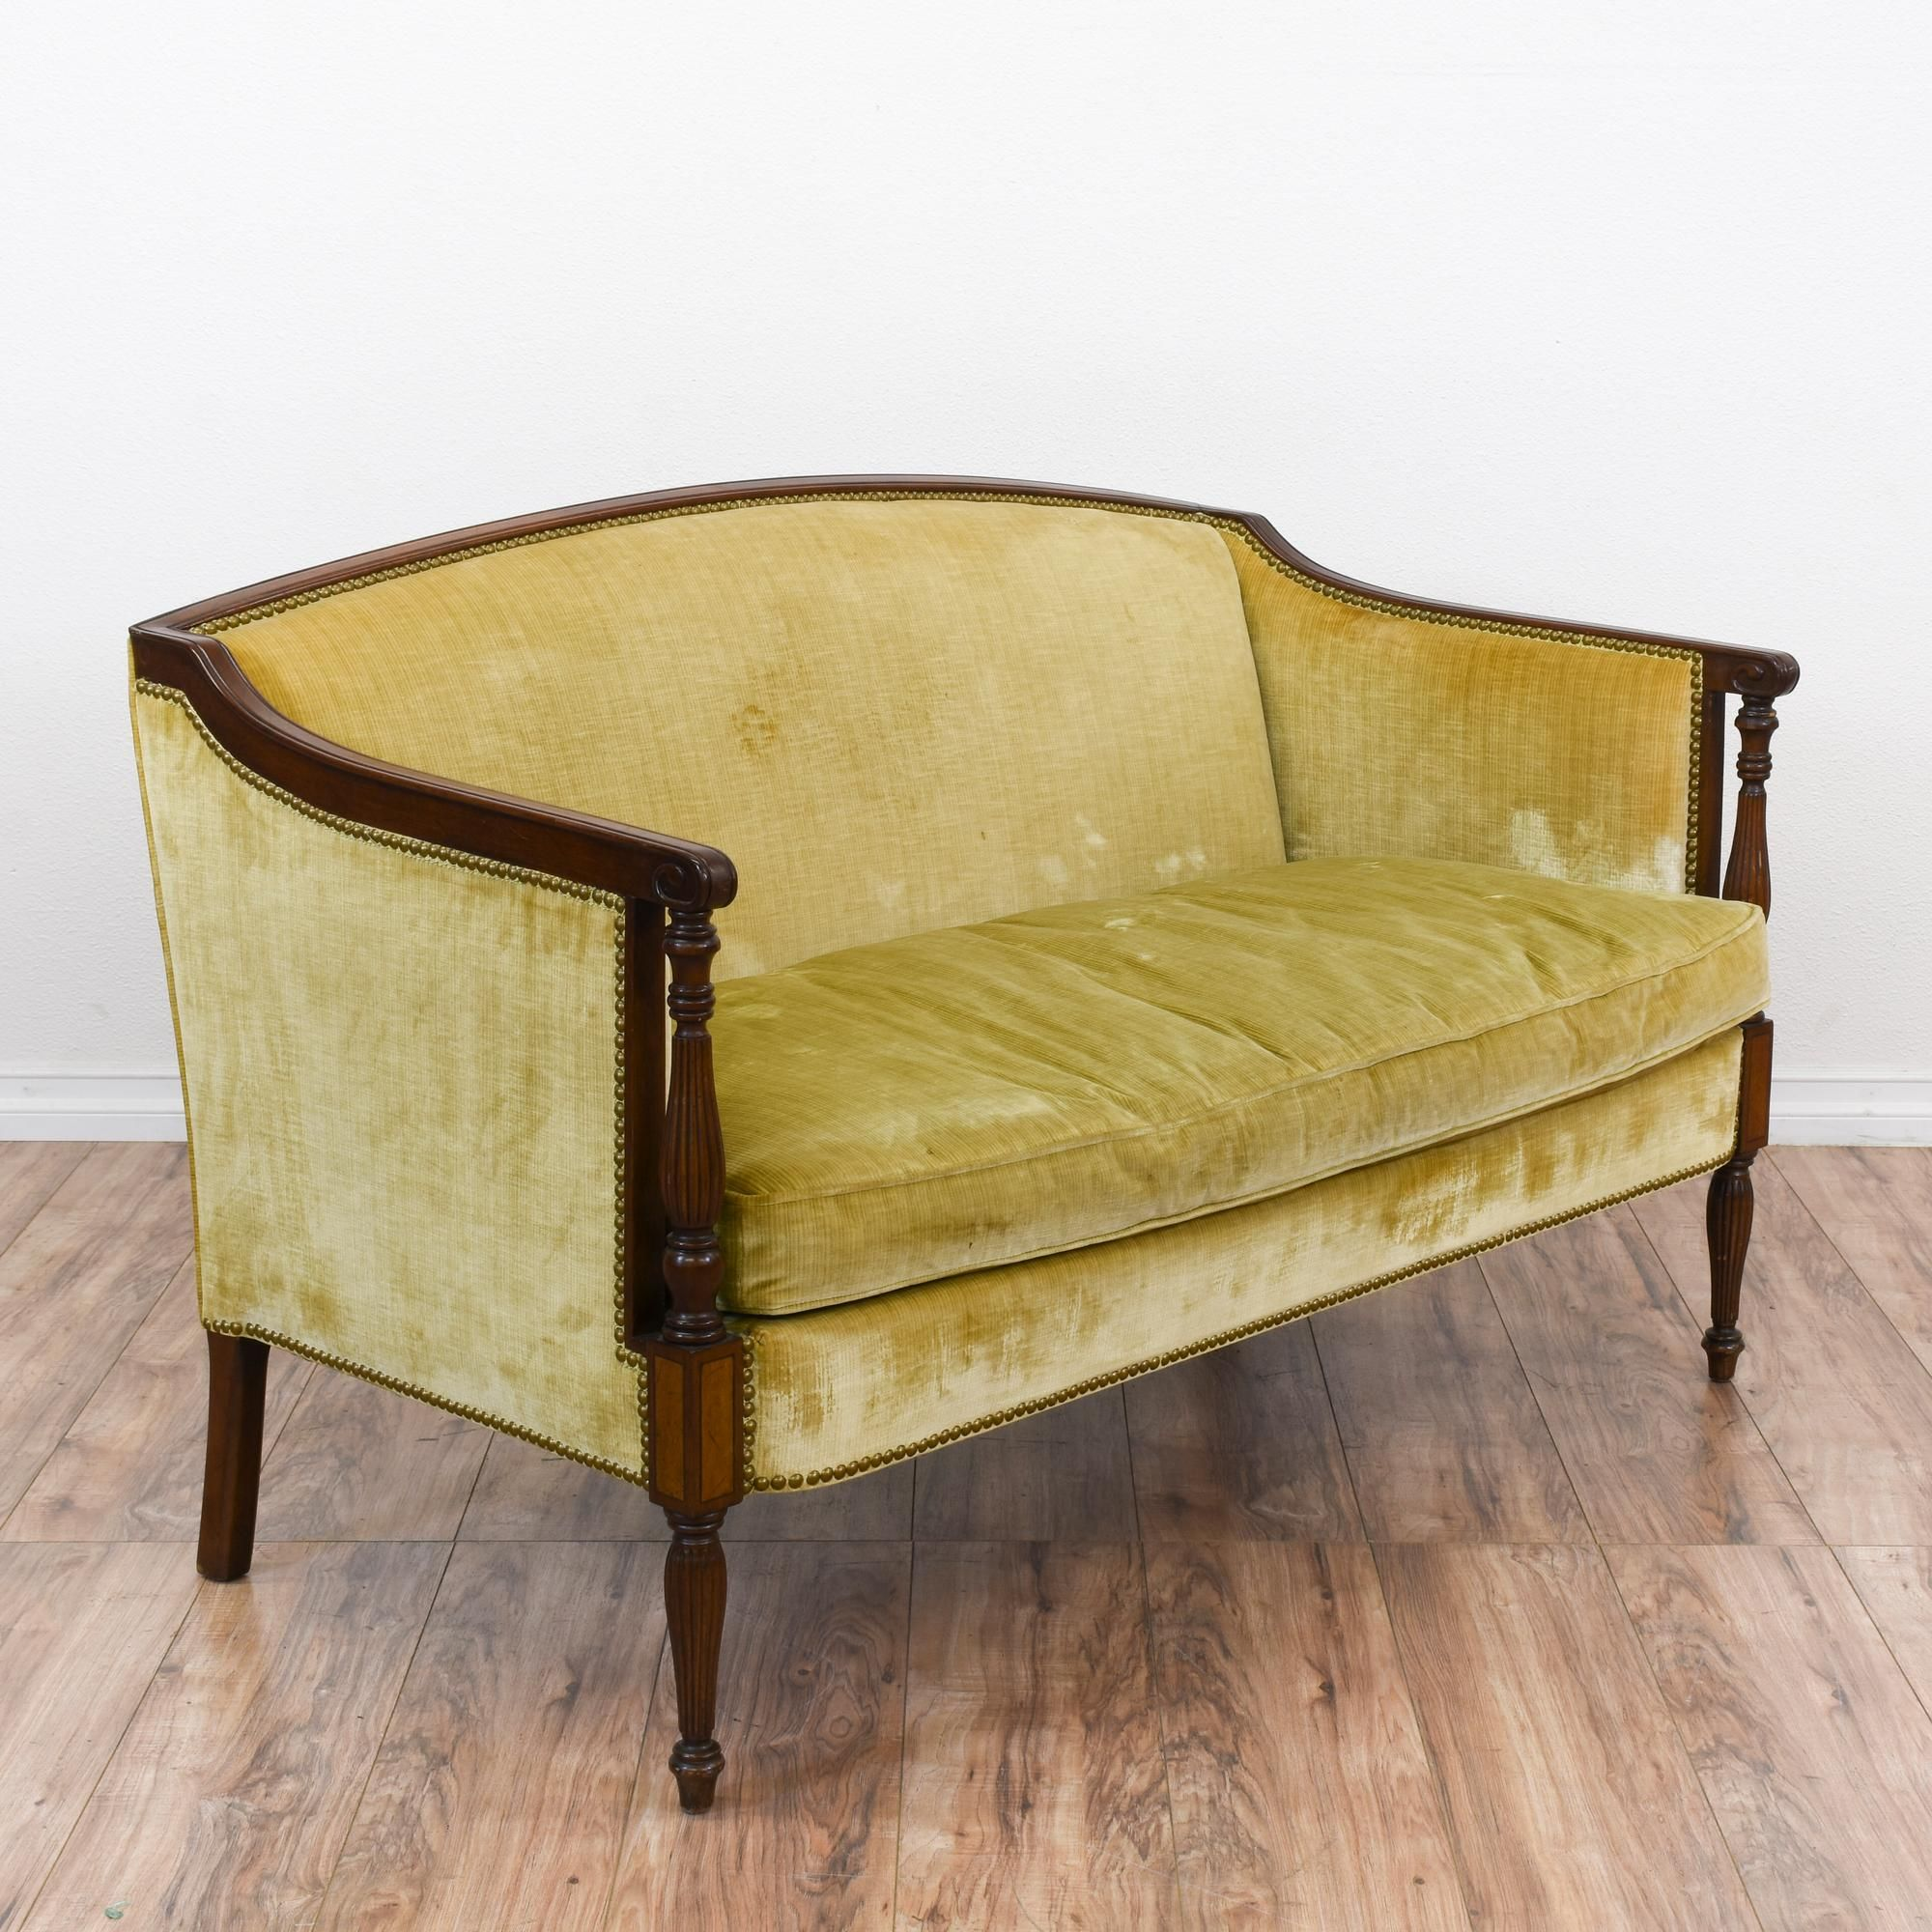 This loveseat is upholstered in a durable mustard yellow velvet